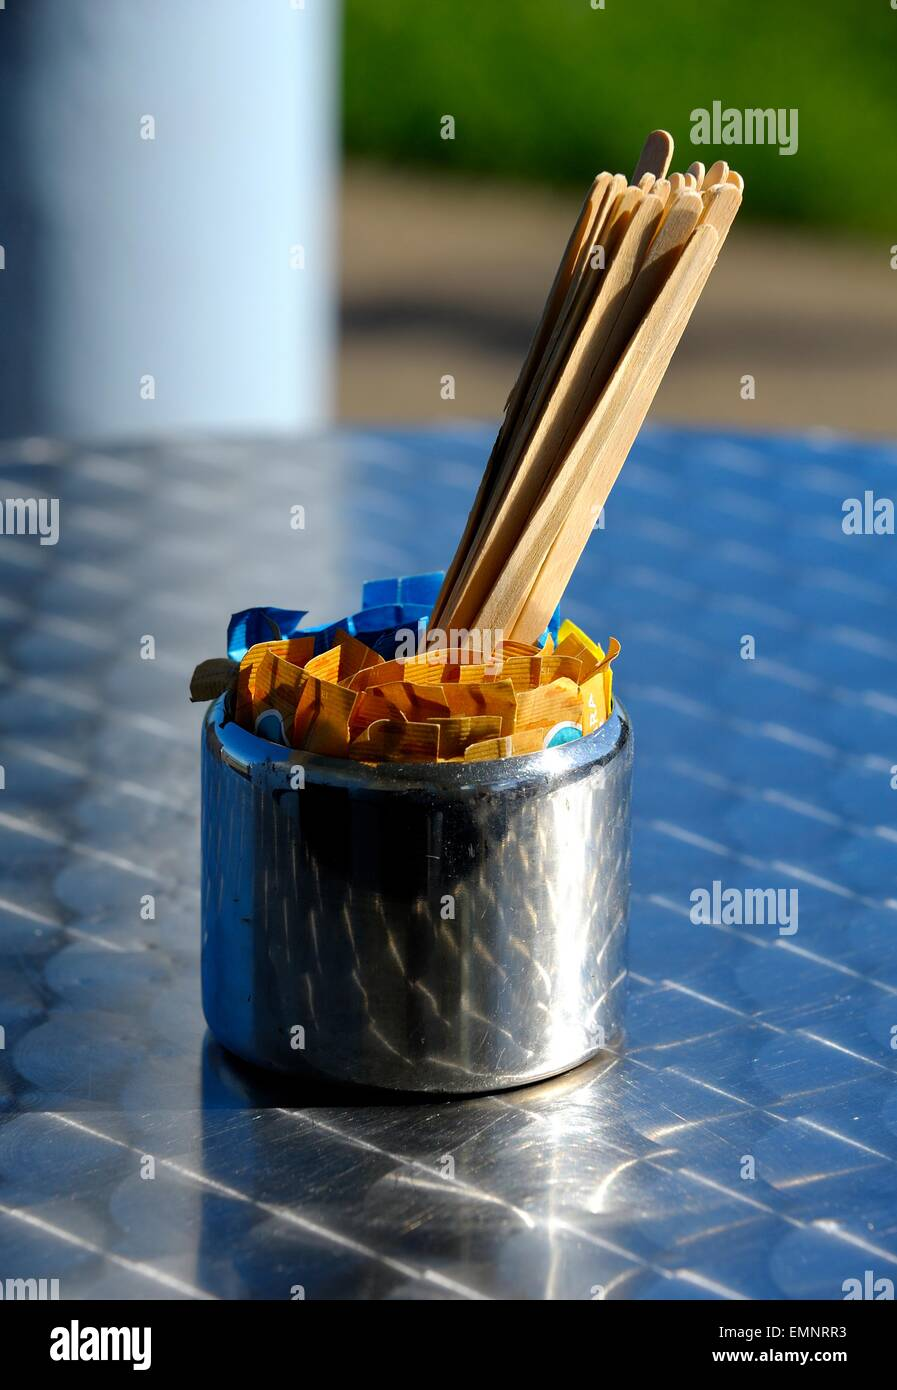 A chrome container with sugars and stirring sticks. - Stock Image